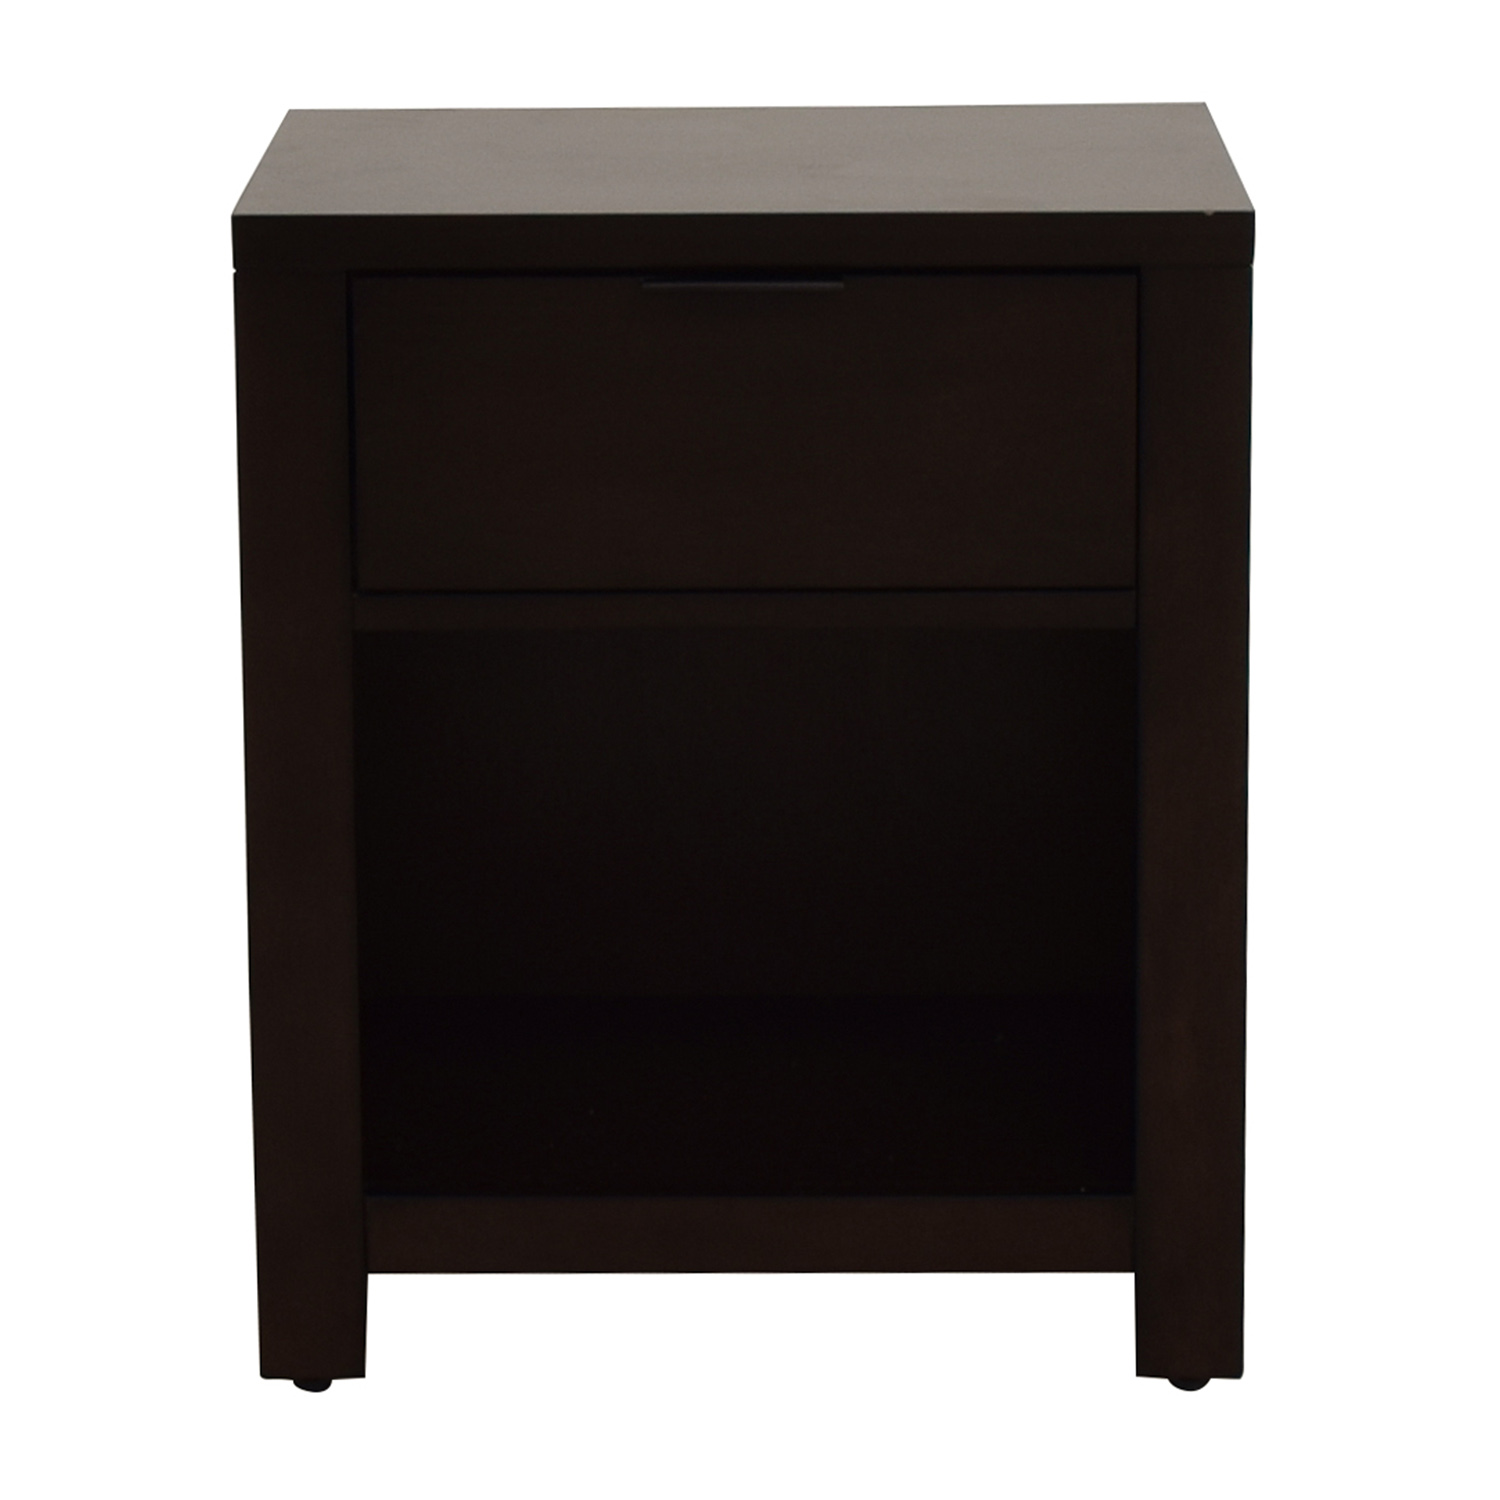 buy Macys Tribeca Nightstand in Mocha Macys End Tables